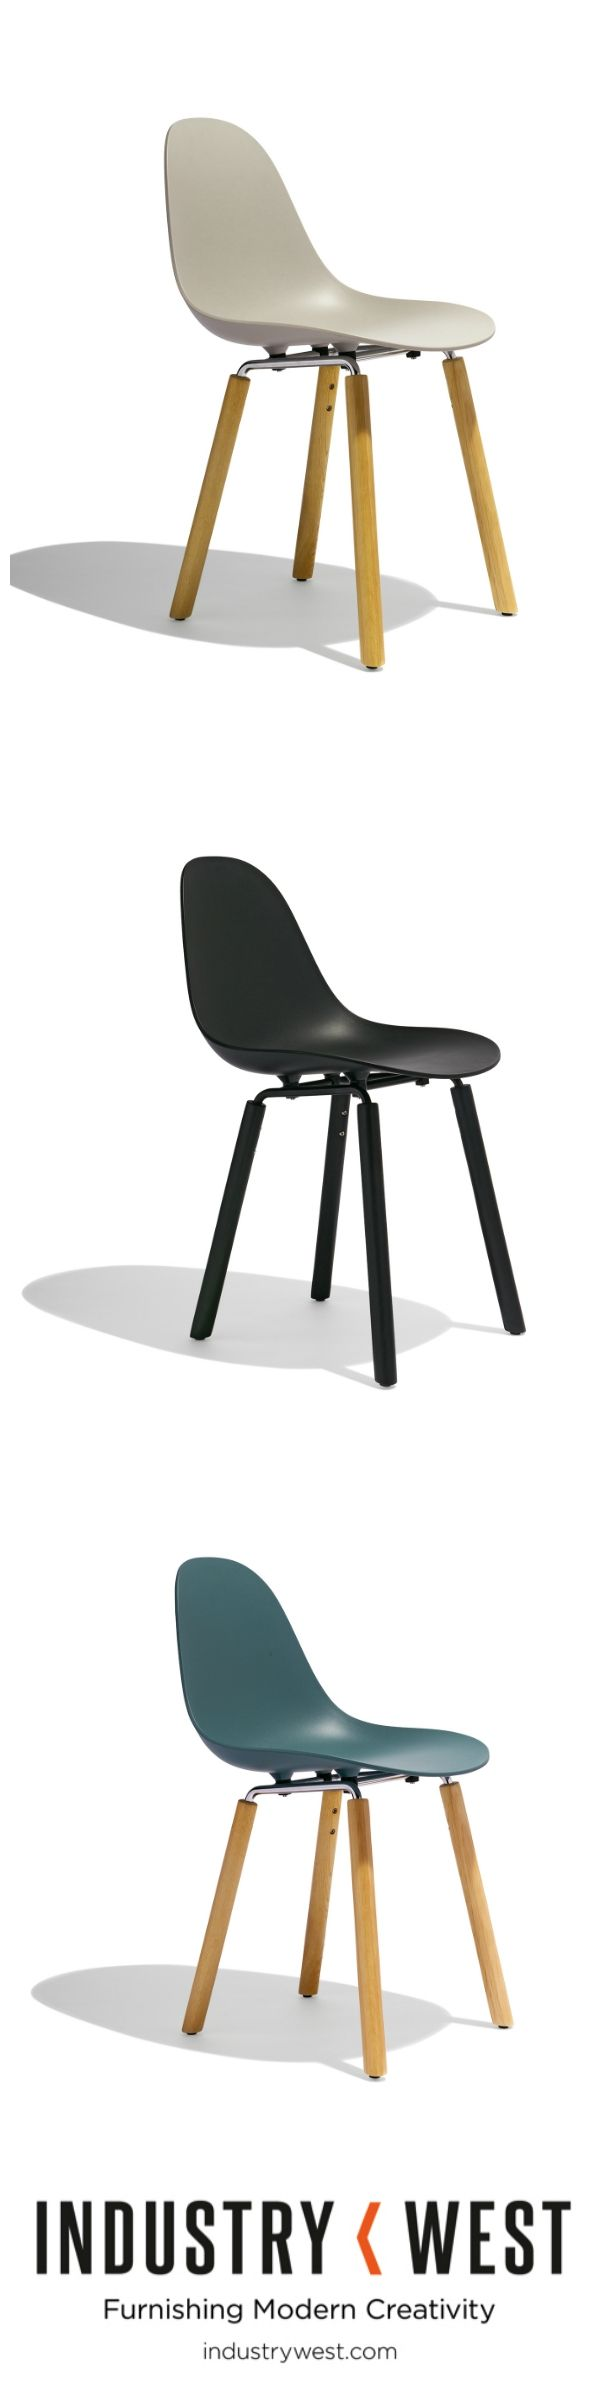 Pre-order Today for March Delivery! The TA Side Chair from TOOU offers an elegantly simple answer to the demand for ergonomics and aesthetics and invokes an absolute contemporaneity. Available in a wide variety of solutions, its strength lies in this flexibility. A solid, flowing and sinuous shell for completion with four curved metal tubular bases with wooden elements, characterized by essential design.